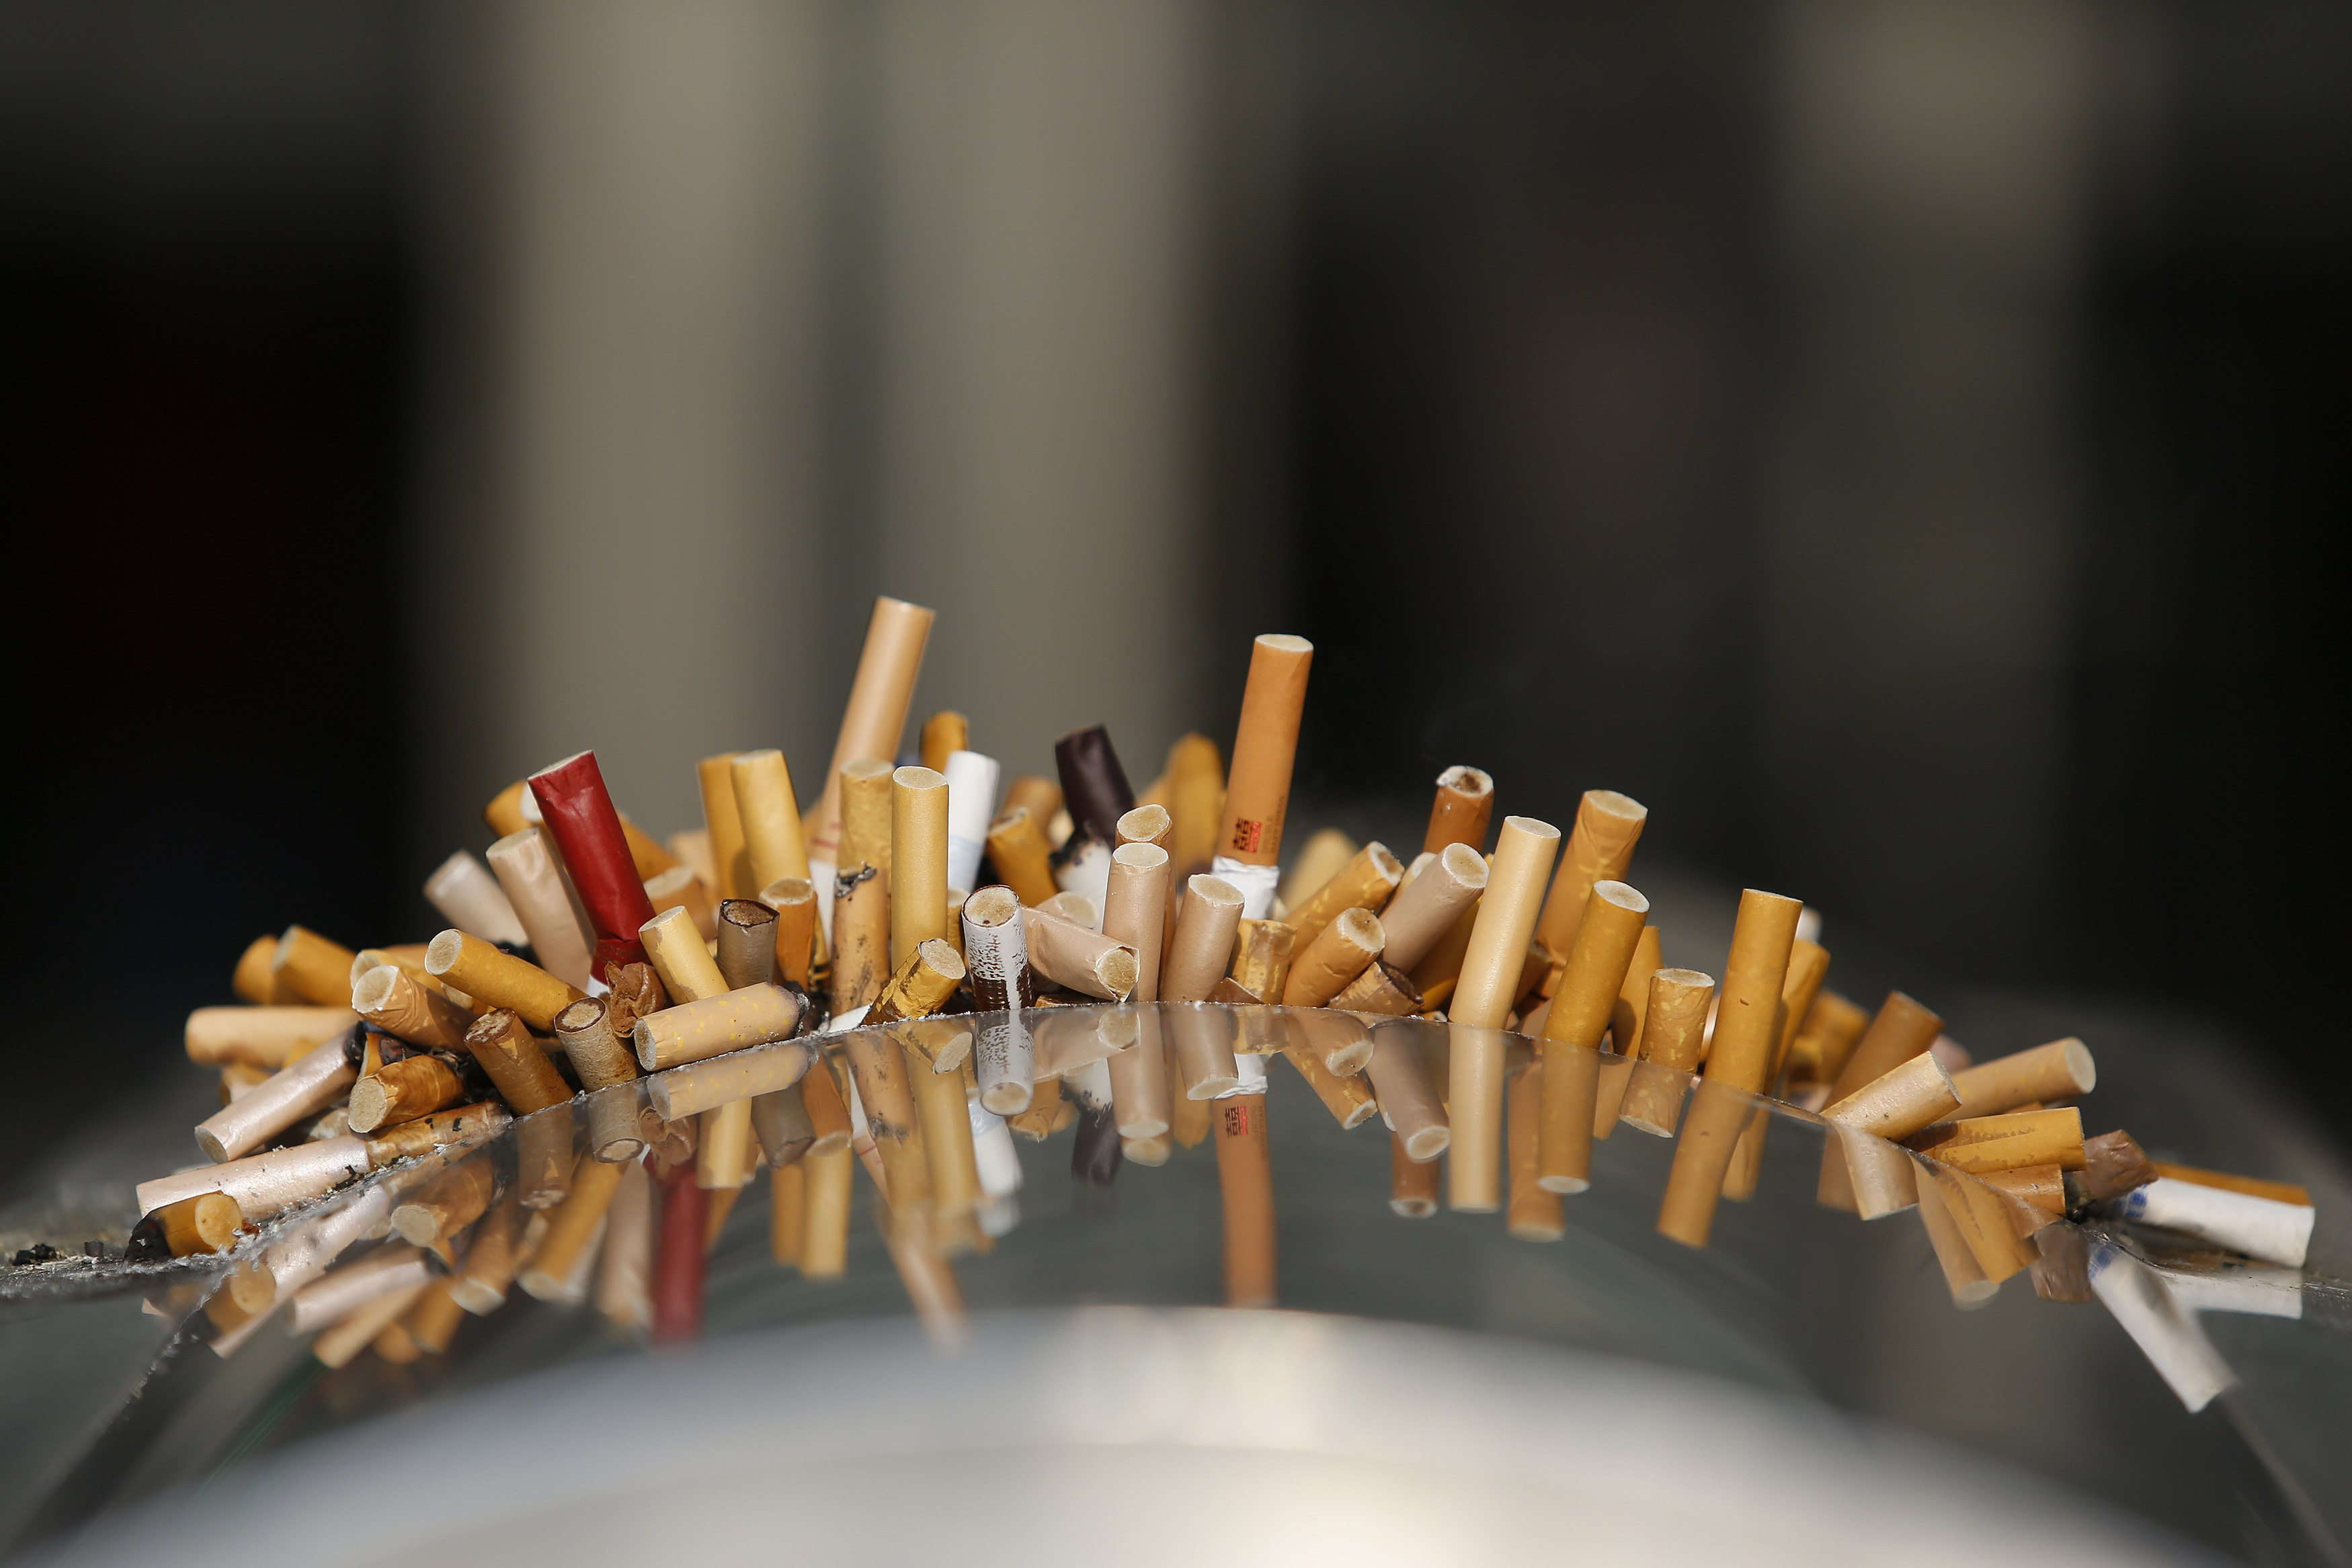 Trebling tobacco tax 'could prevent 200 million early deaths'